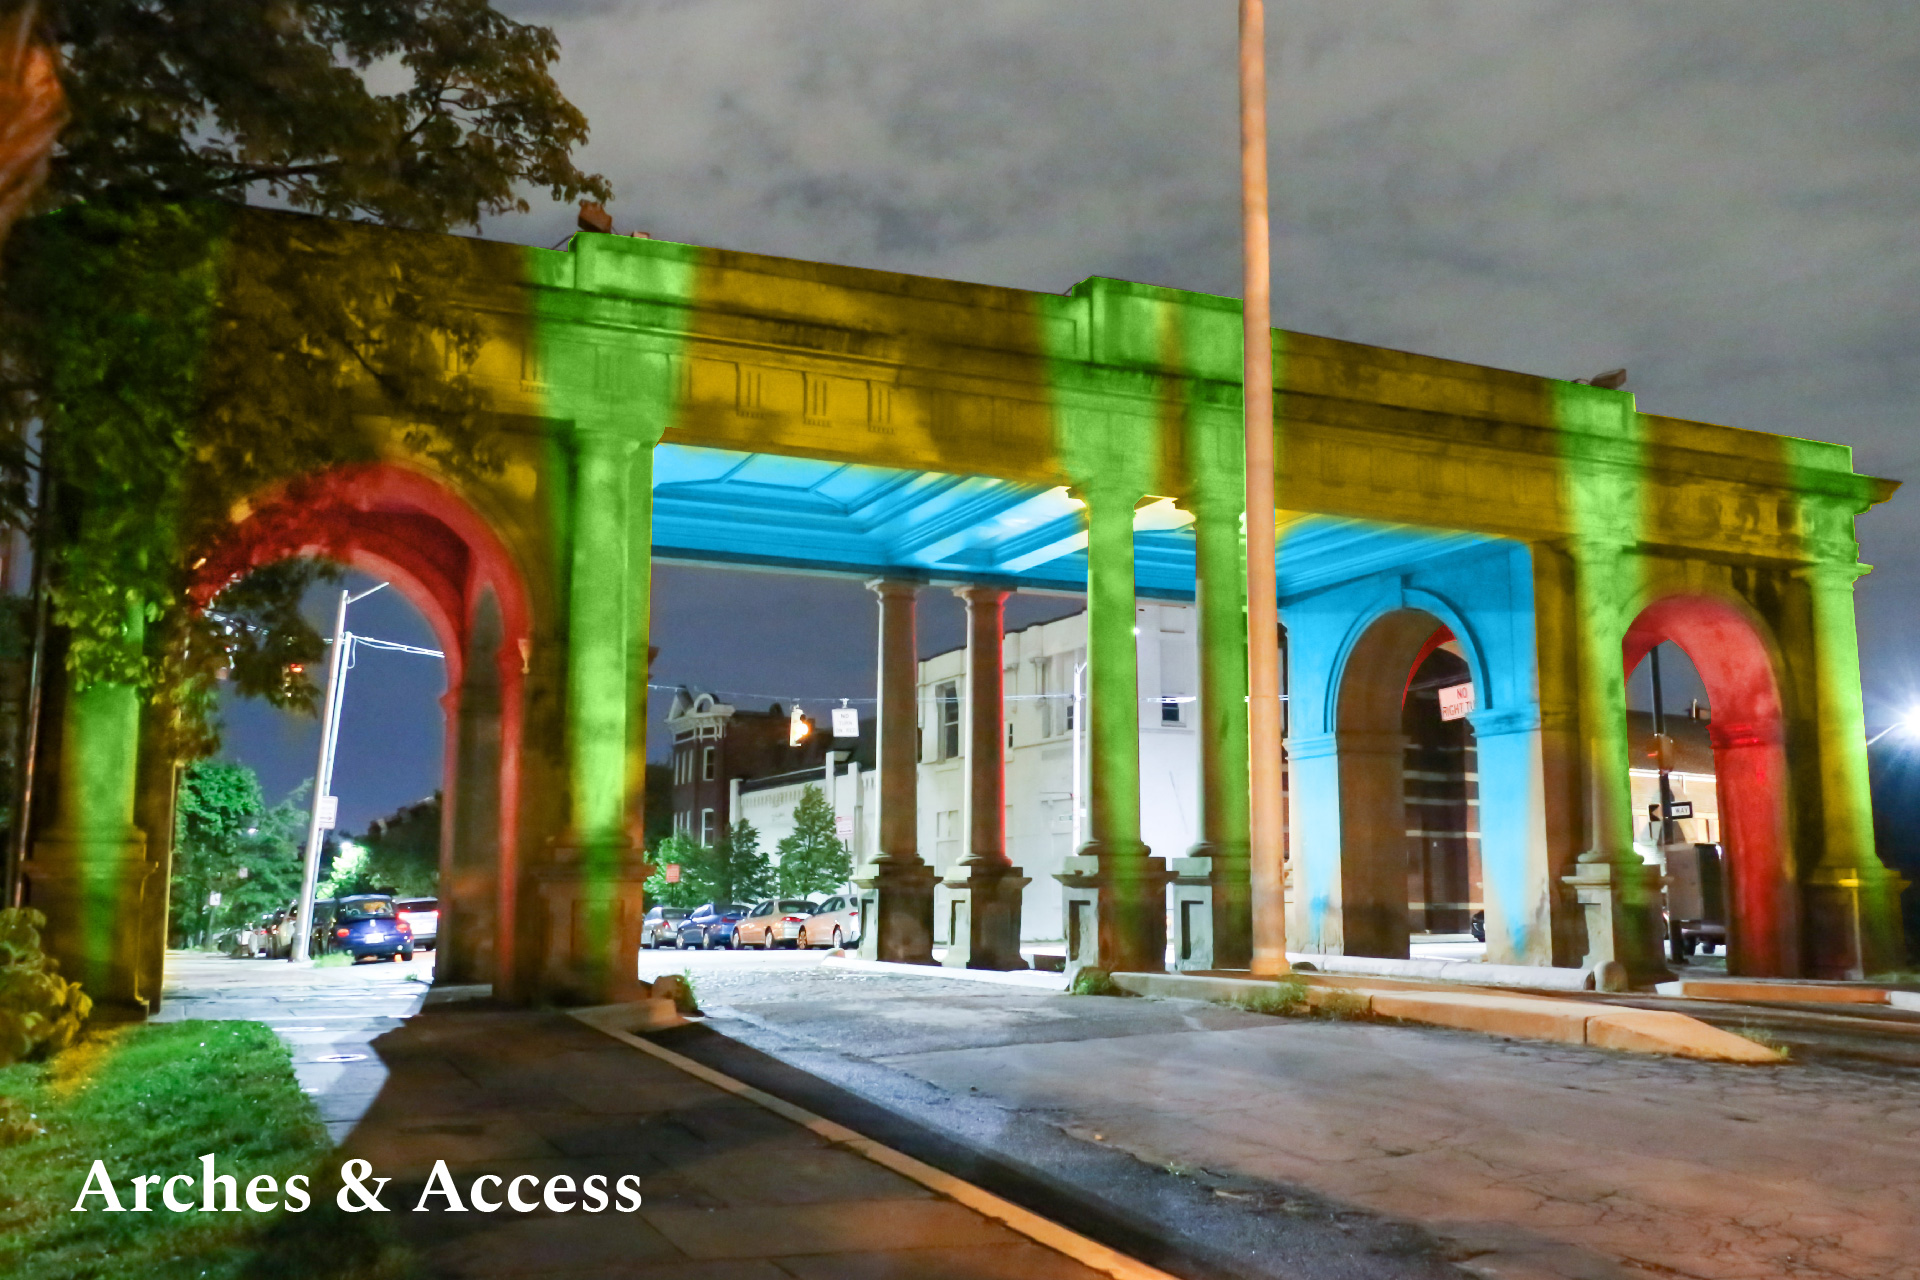 Arches & Access Druid Hill Park Gate rendering